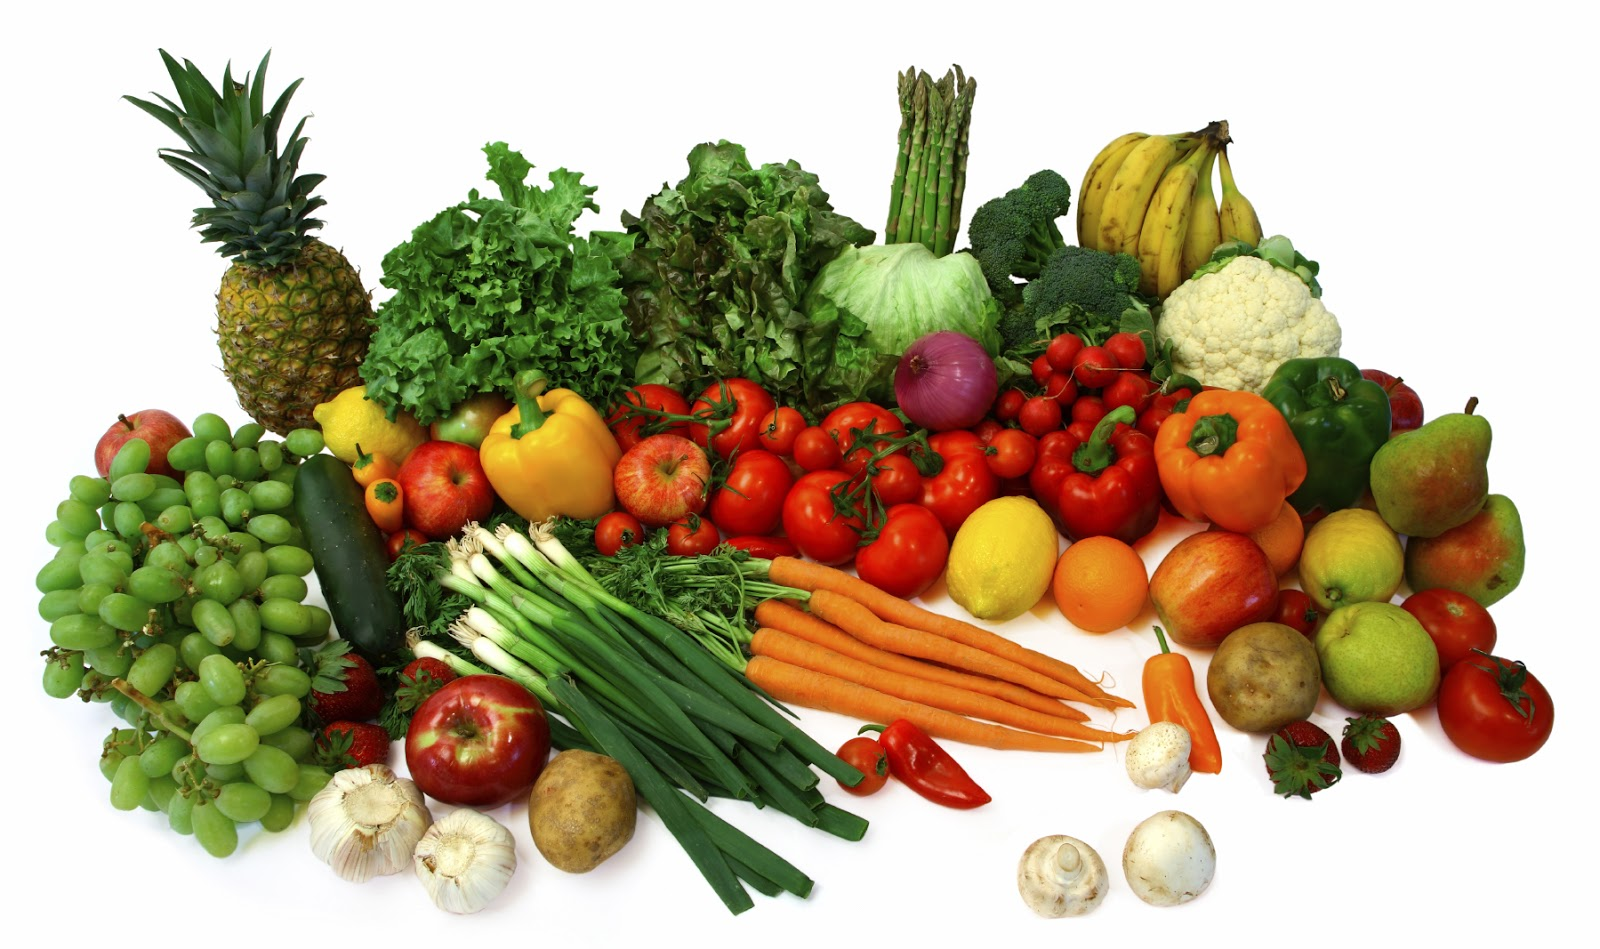 Rules of cooking vegetables and fruits